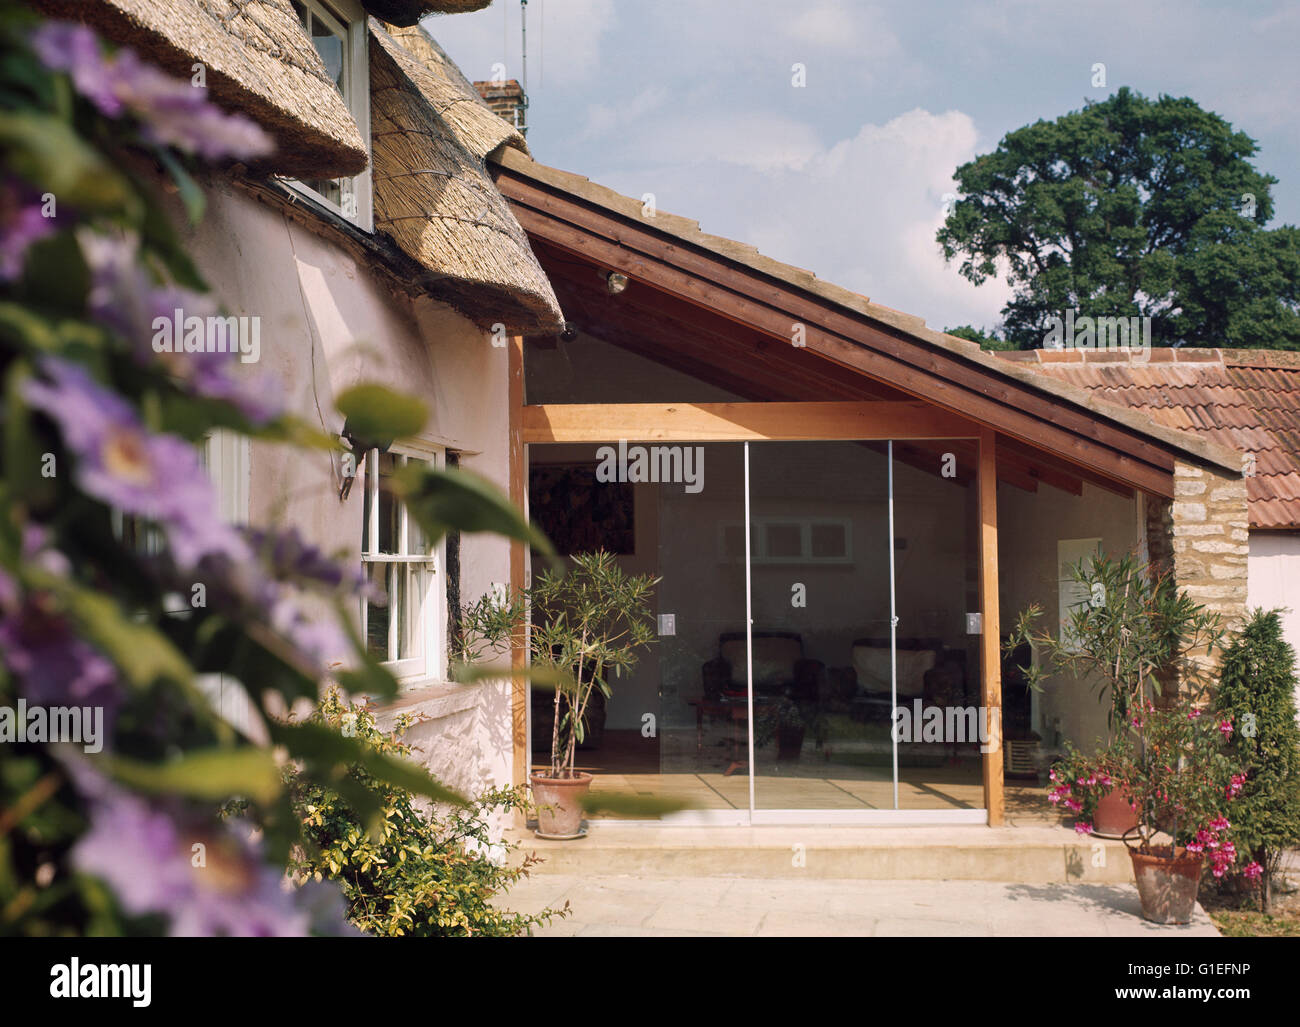 Cottage Extension Haddenham. Exterior view of a cottage extension with a sloped roof and ceiling to floor windows. - Stock Image